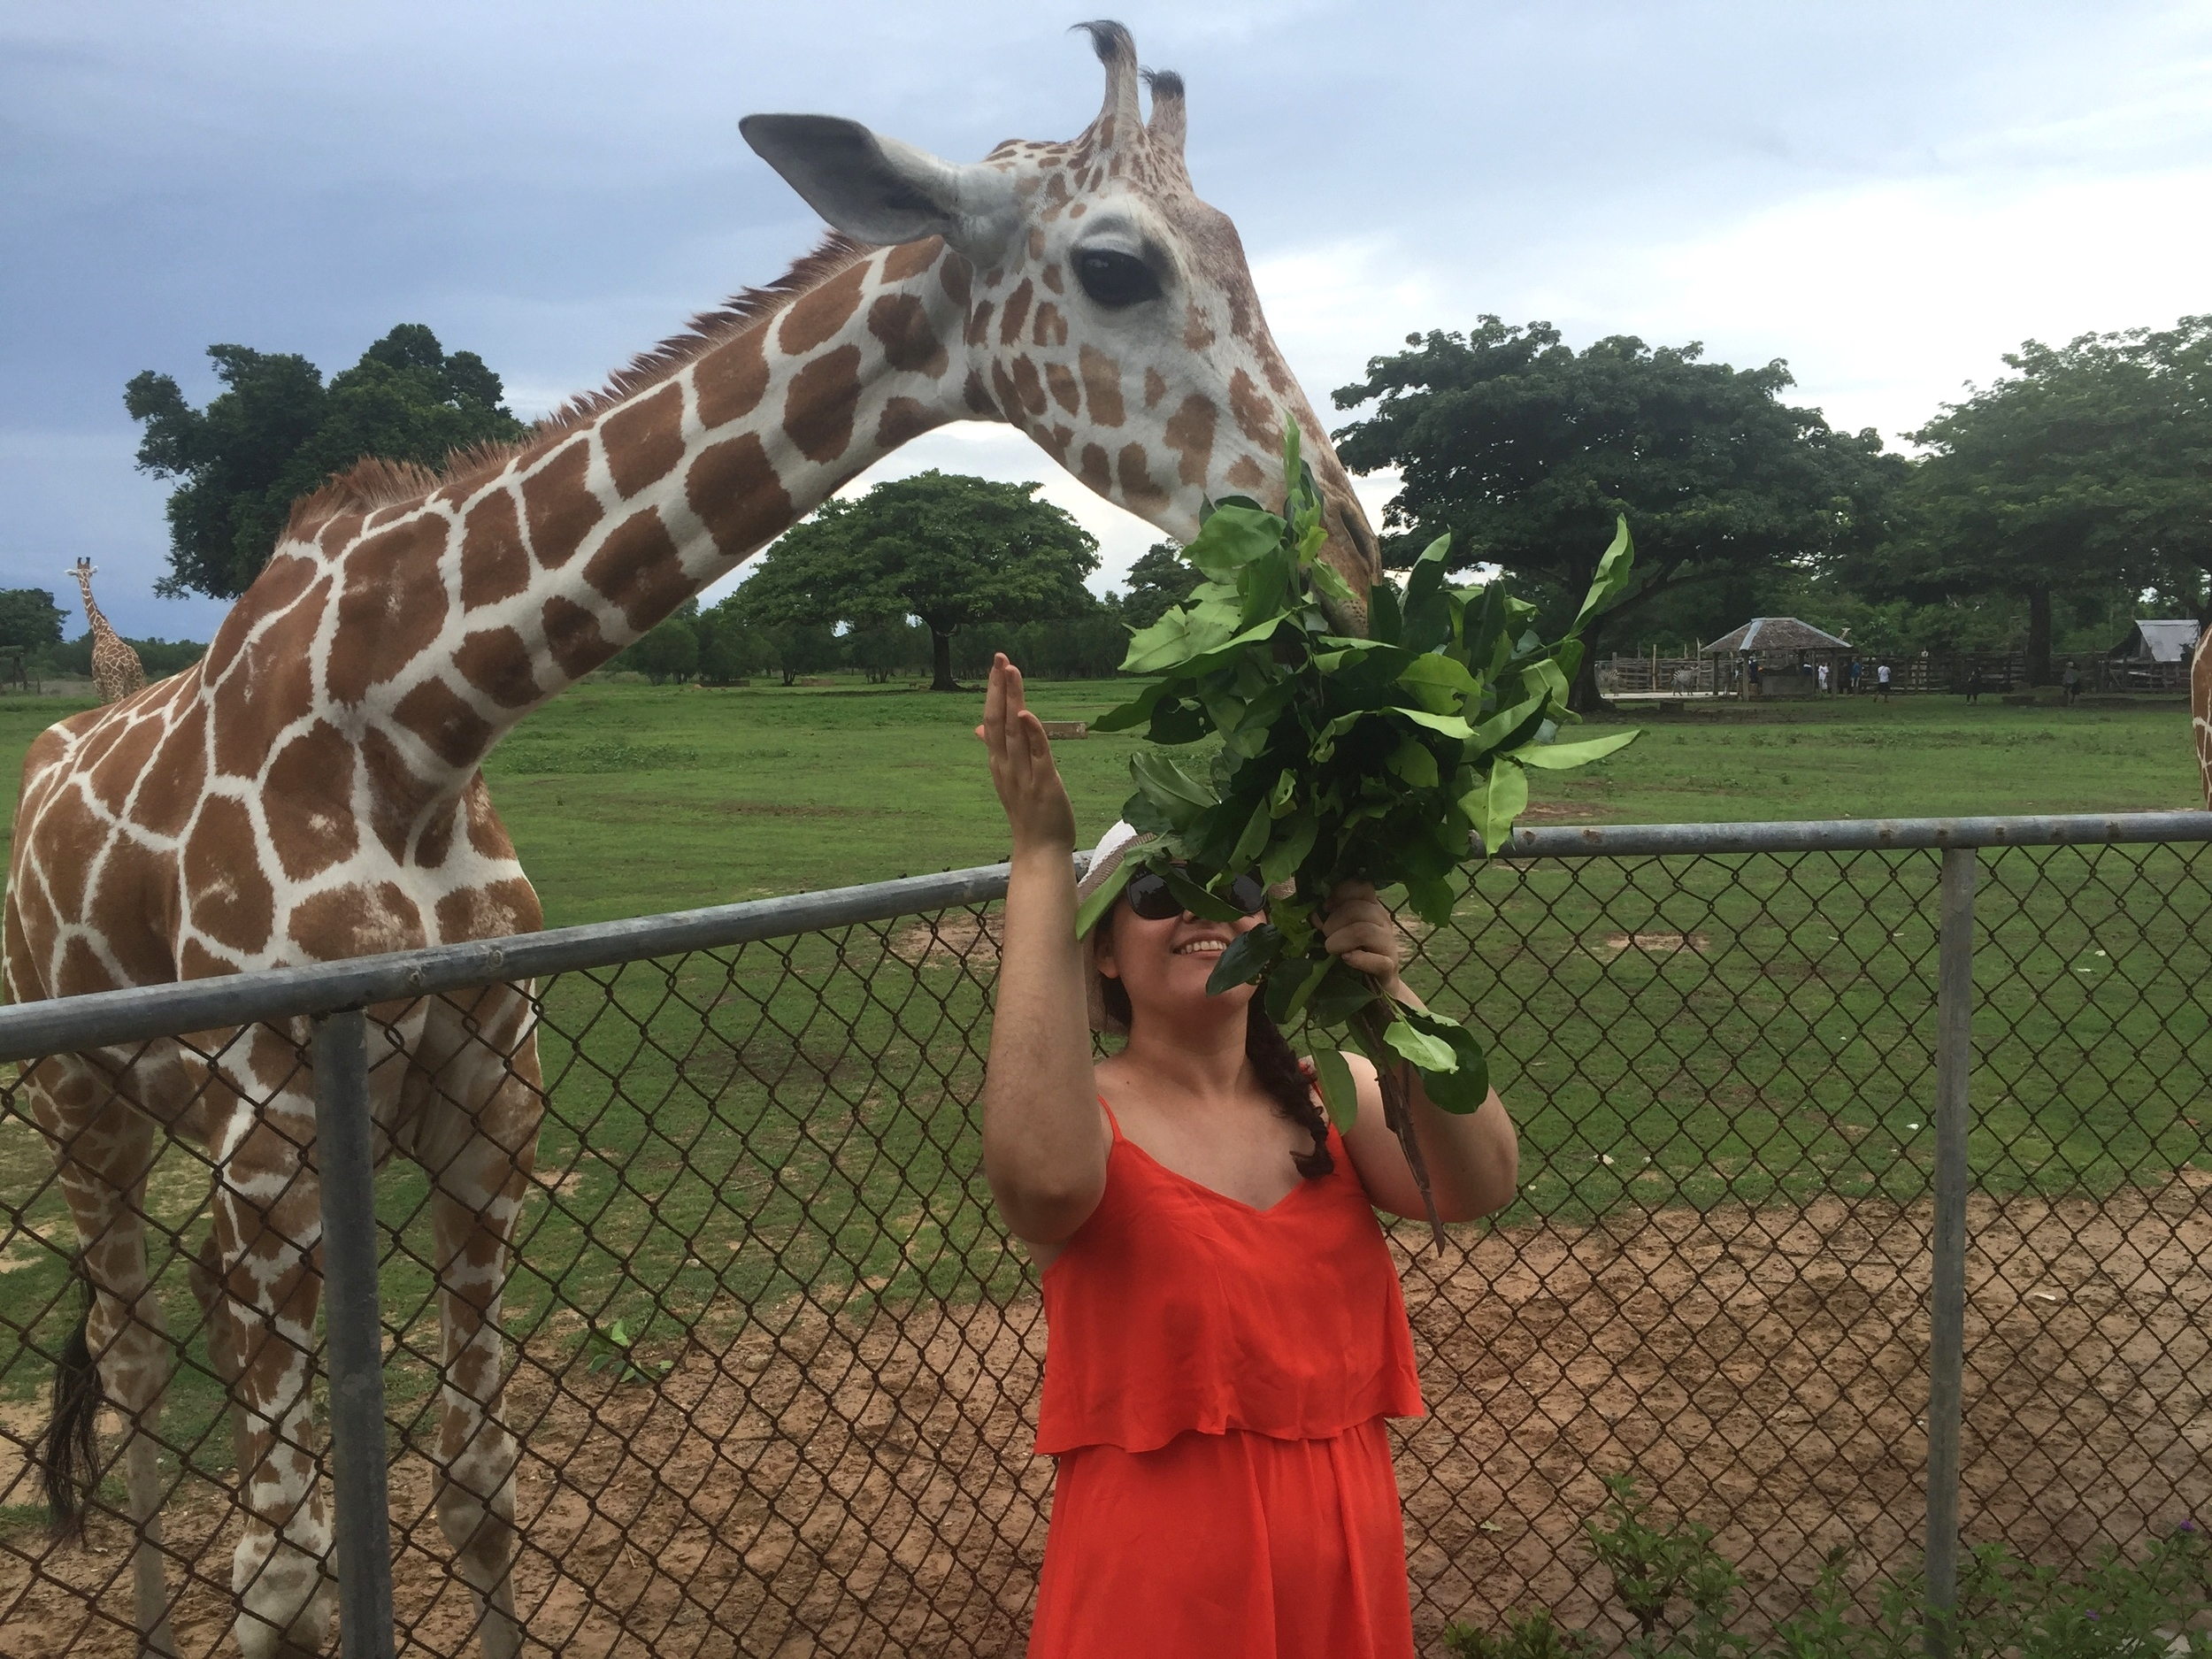 to see Giraffes !!!! and other wildlife at the Safari Park on the island.